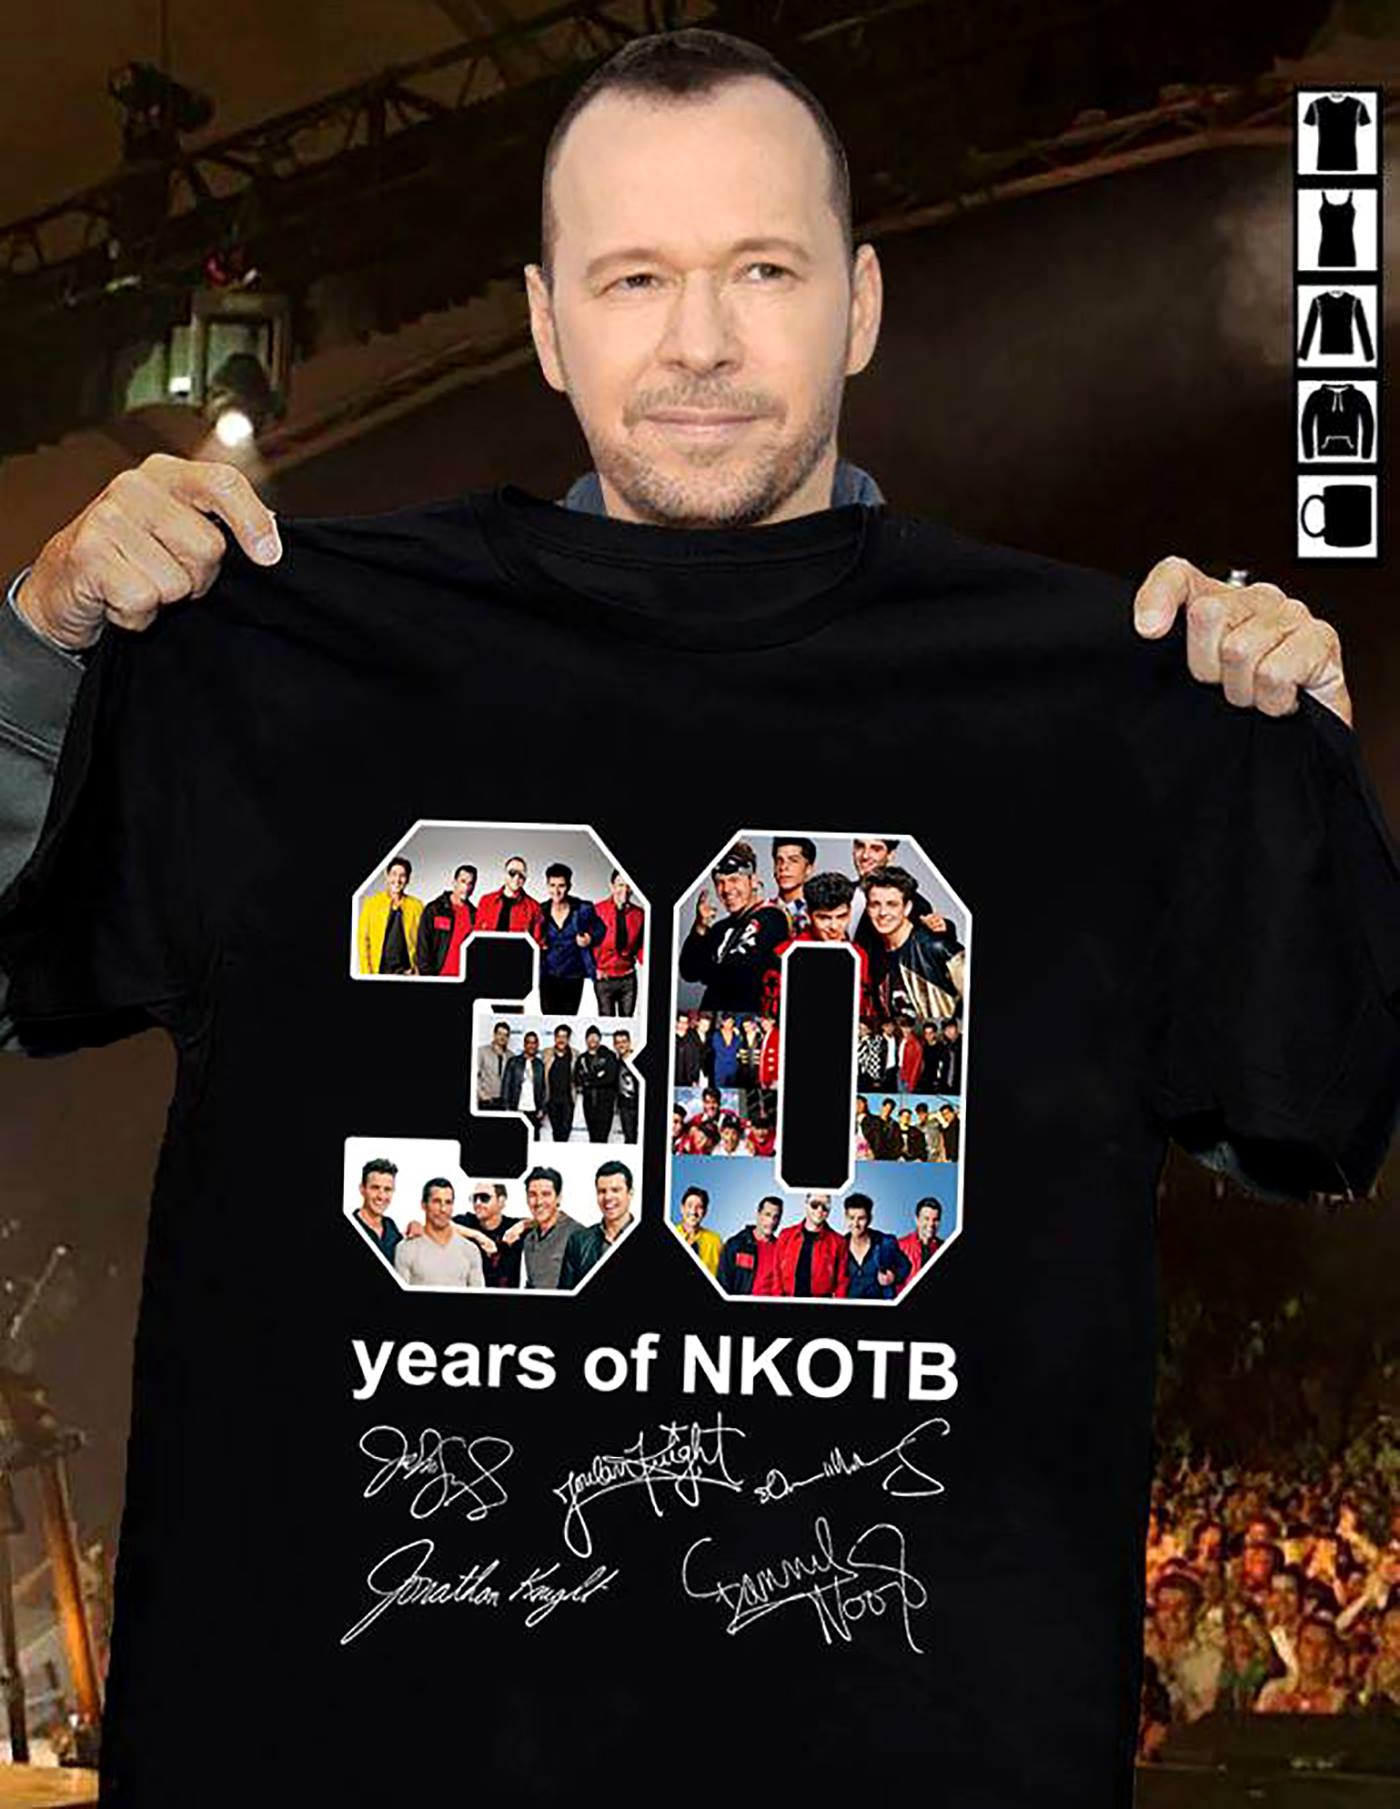 30 Years of NKOTB Signature Shirt